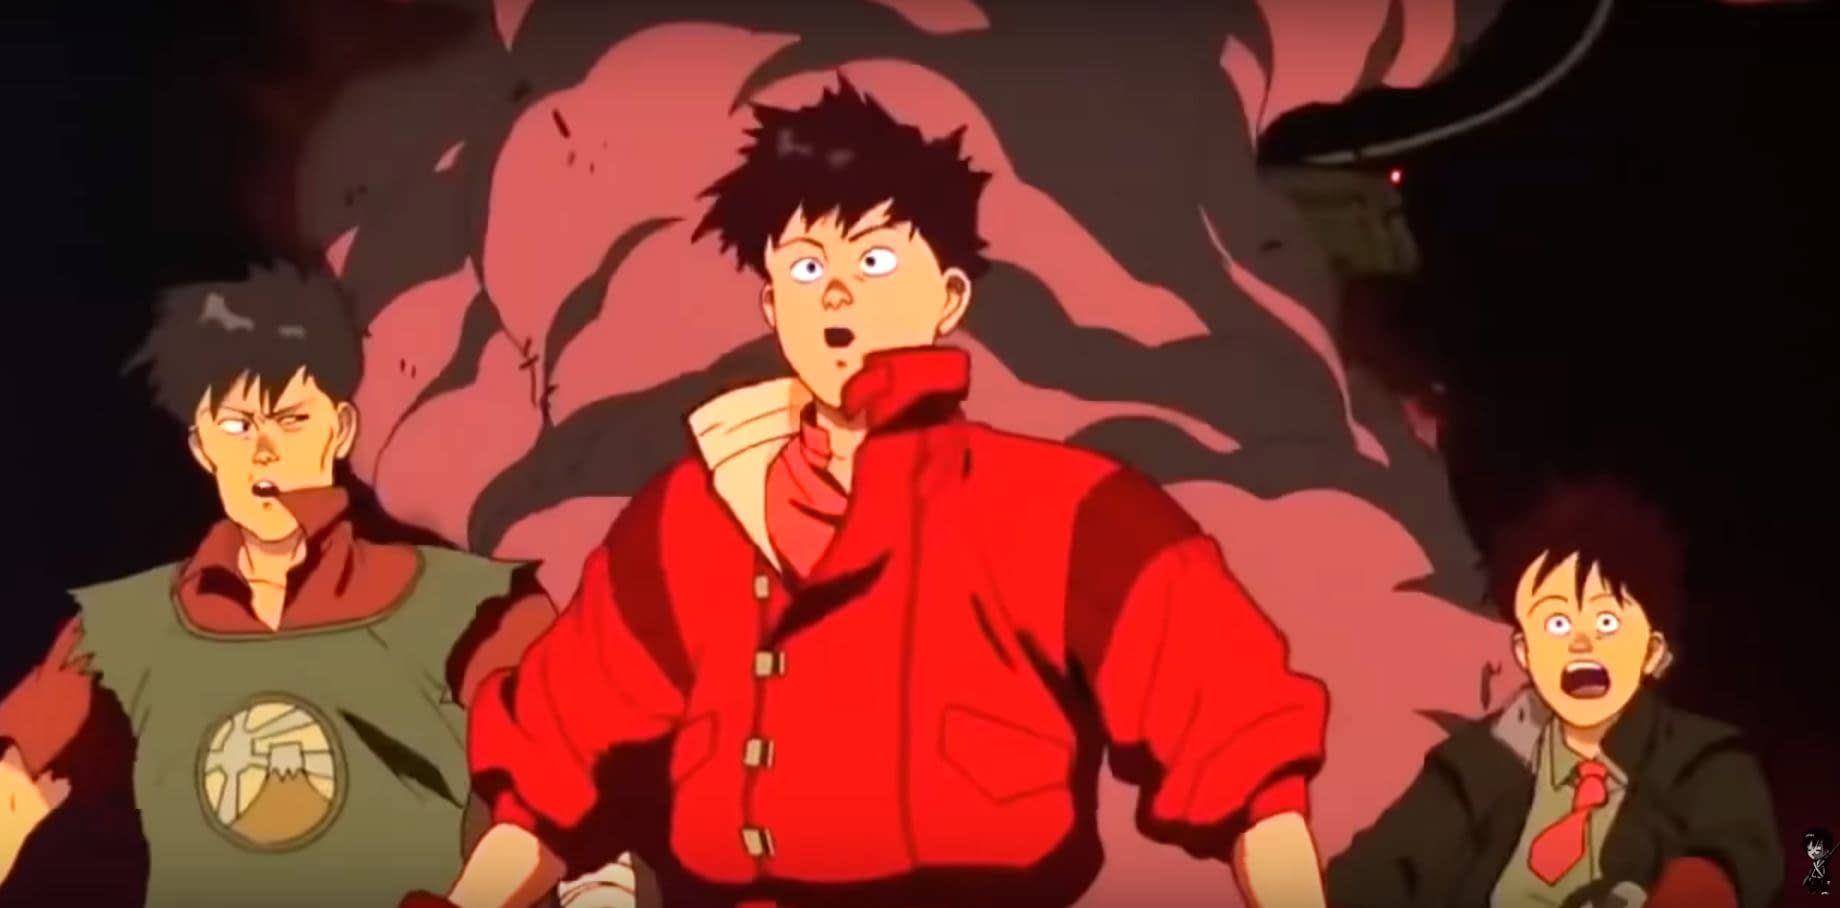 Akira Manga Creator Announces New Projects